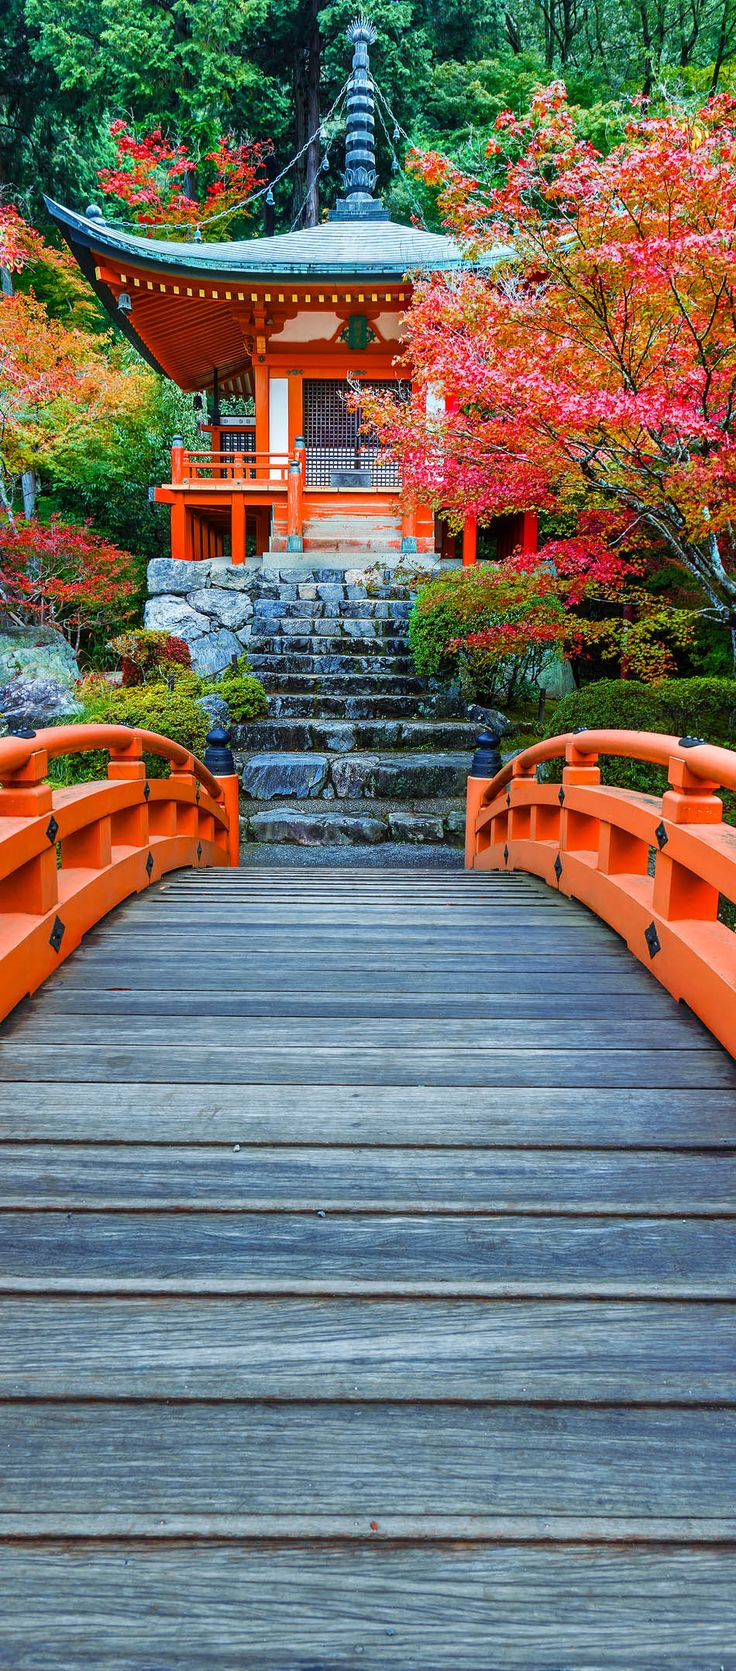 Autumn Colors at Daigoji Temple in #Kyoto, #Japan | 19 Reasons to Love Japan, an Unforgettable Travel Destination